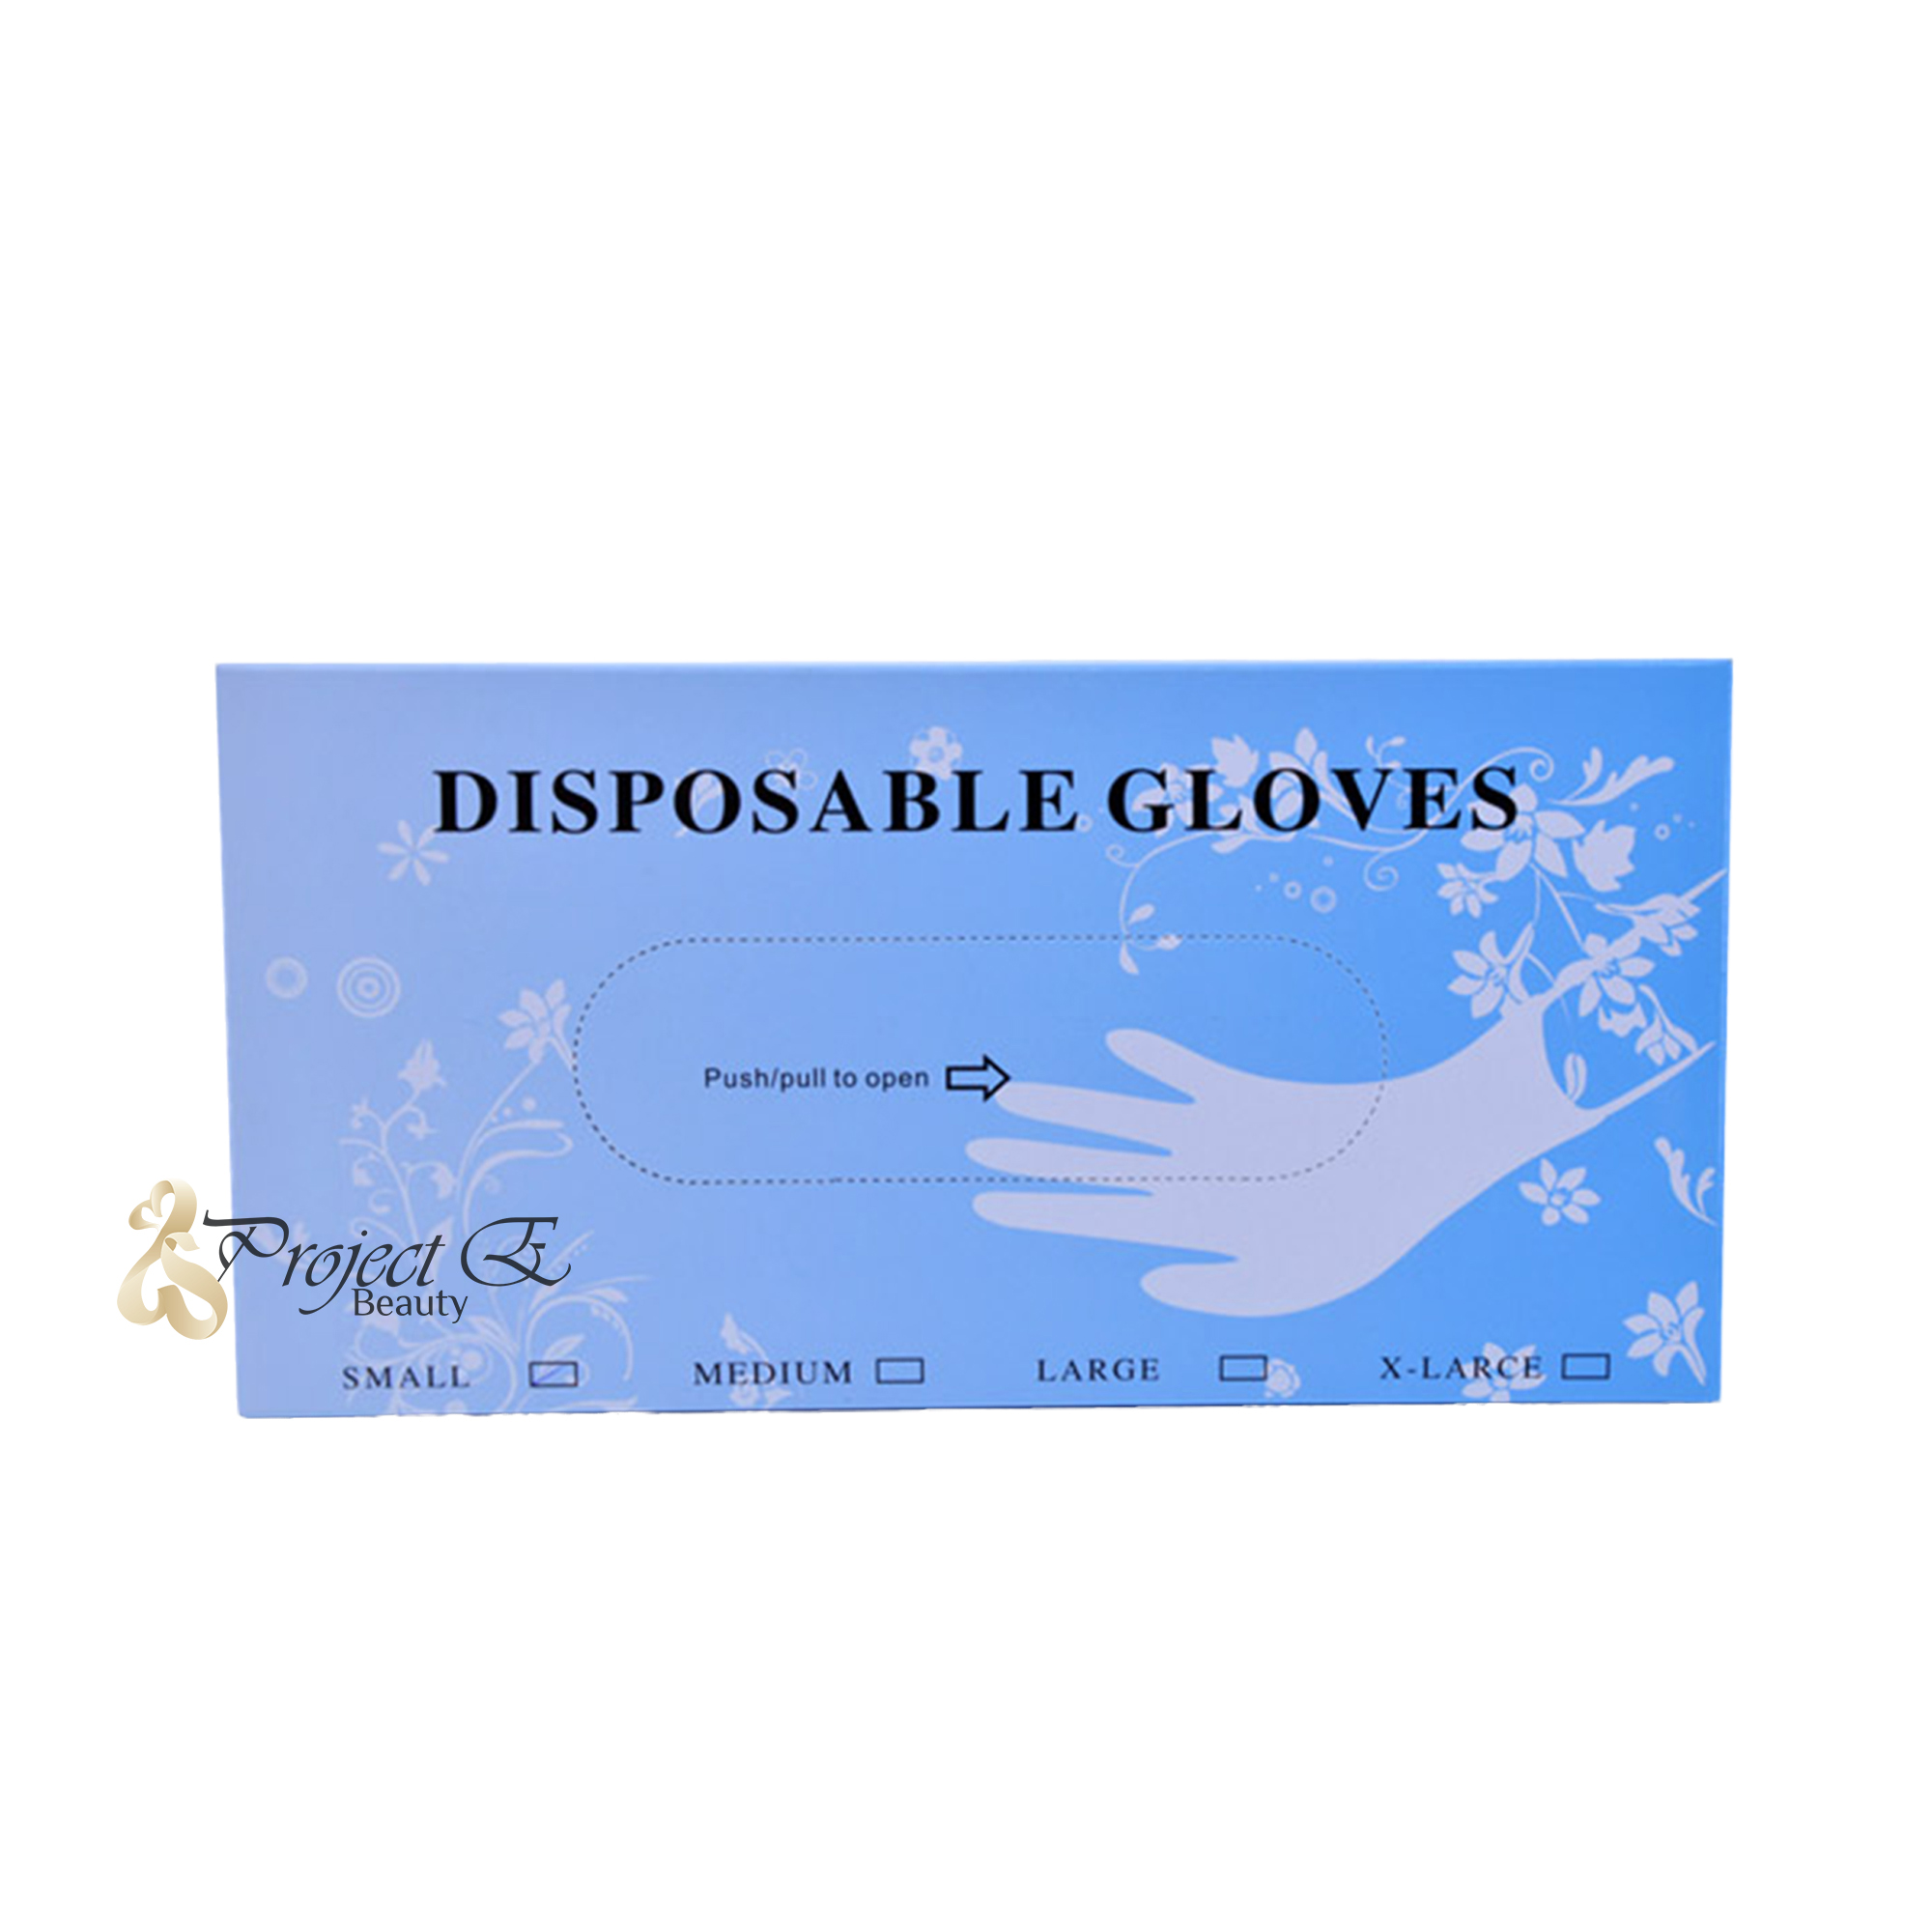 80 PCS Disposable Durable PVC Emulsion Multi-Purpose Beauty Salon Food Medical Clean Use Gloves - Medium Size